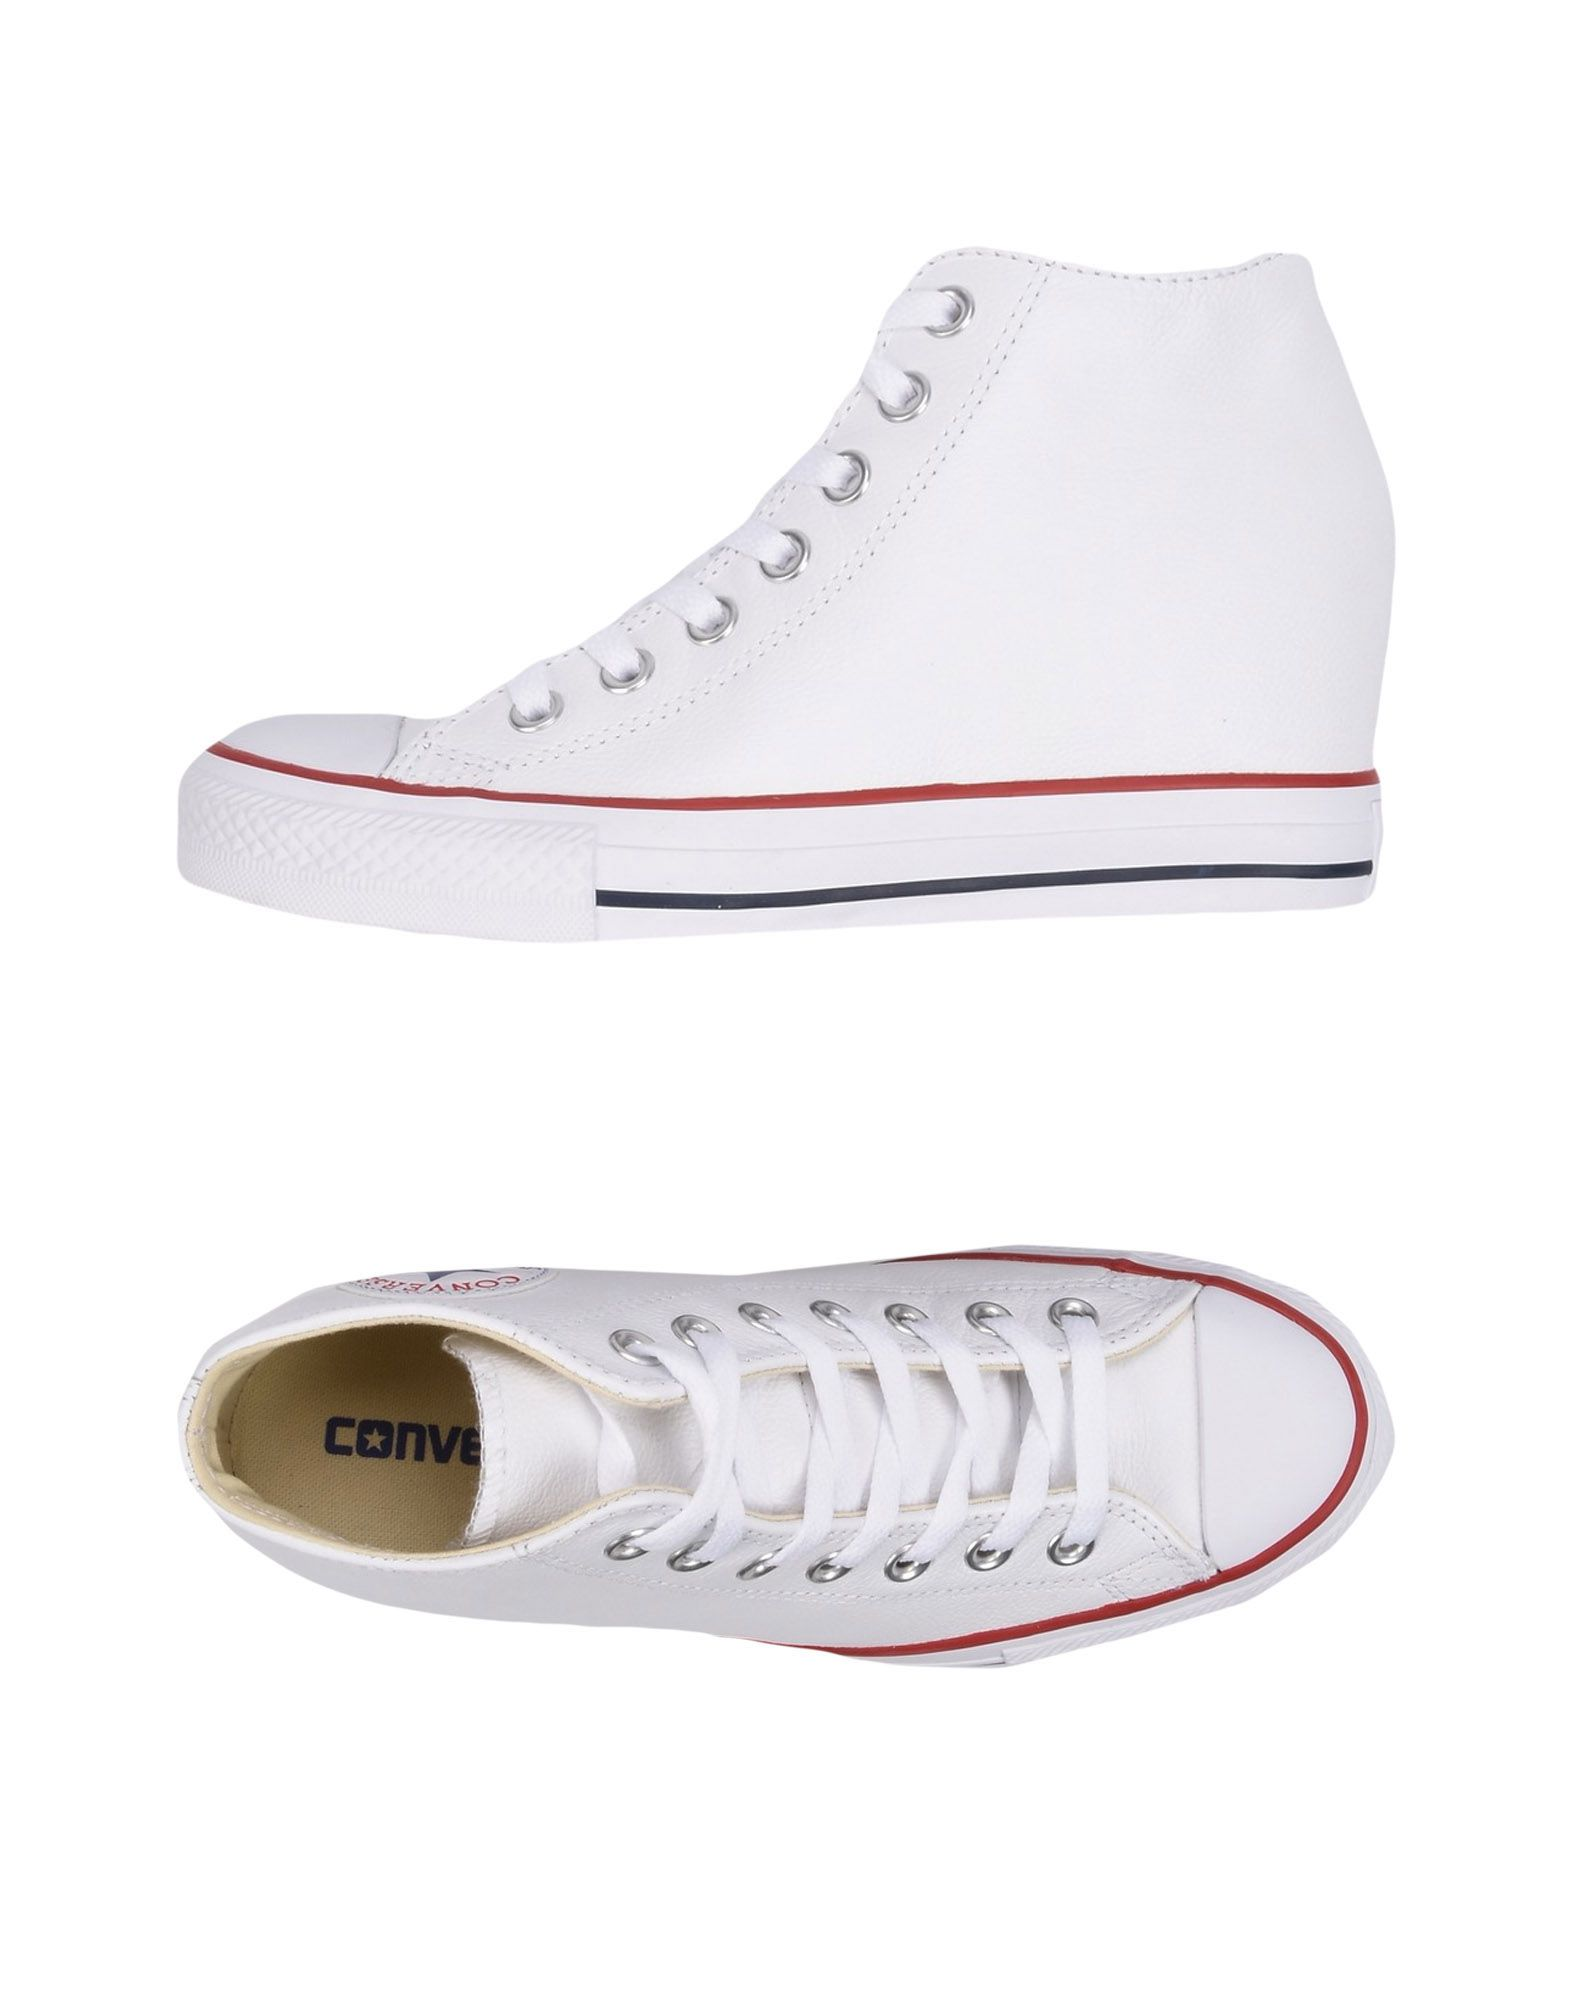 Sneakers Converse All Star Ct As Mid Lux Leather - Femme - Sneakers Converse All Star sur